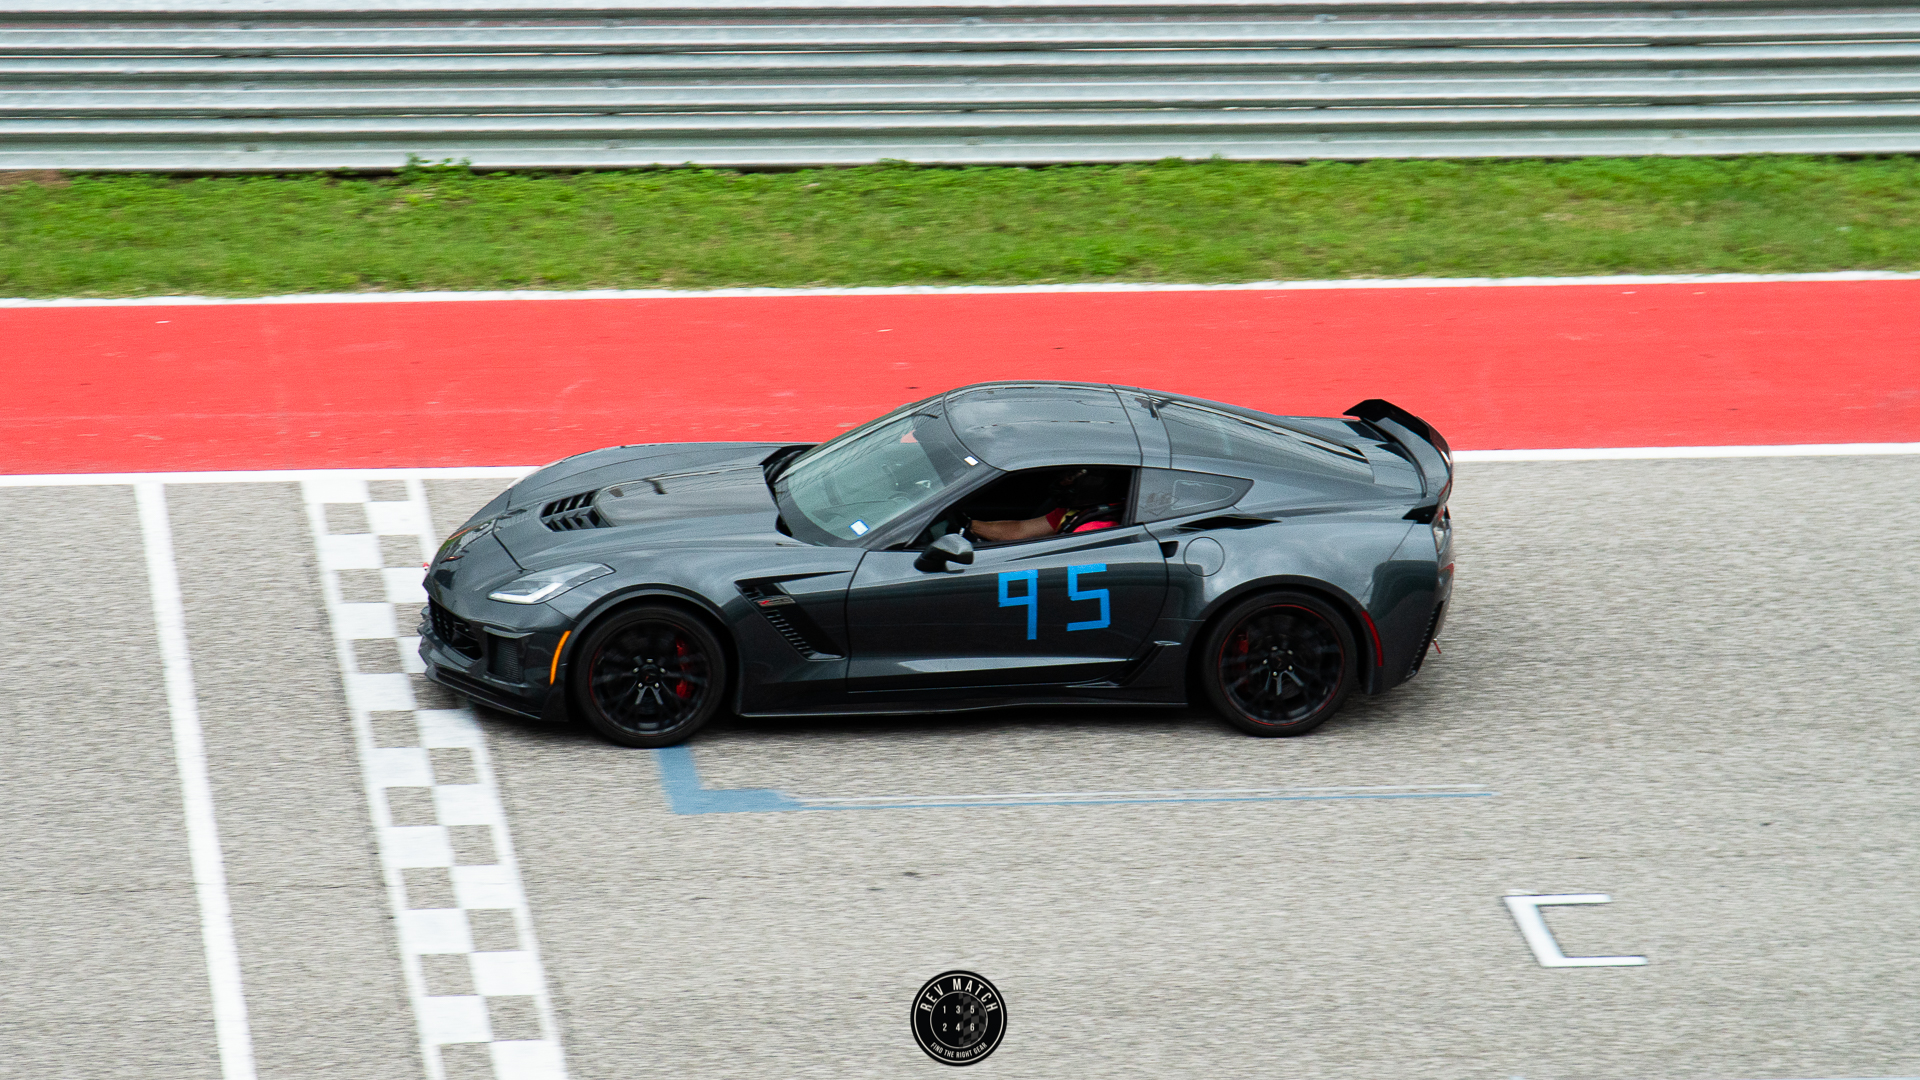 Edge Addict COTA May 2019 Rev Match Media-14.jpg